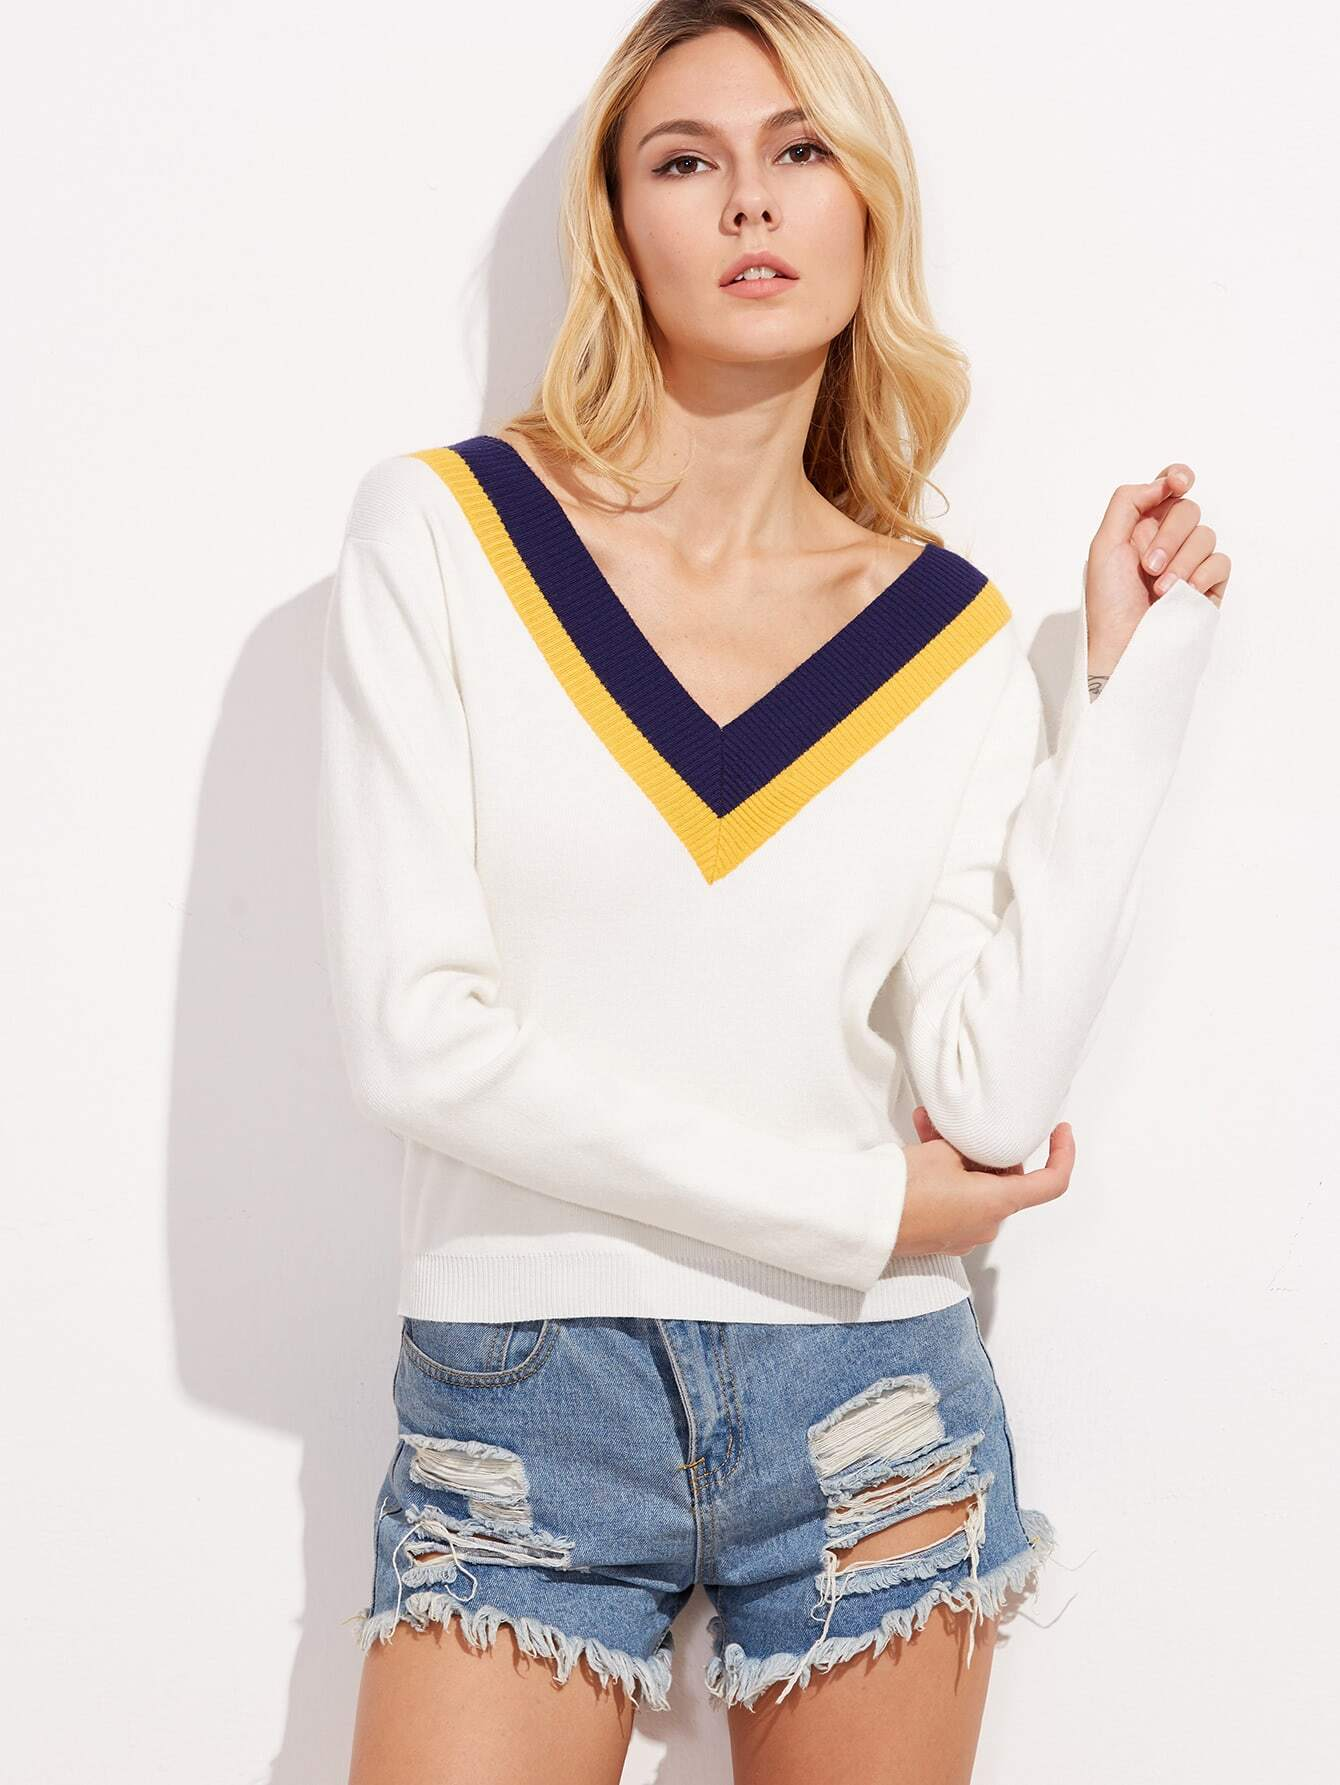 White Striped V Neck SweaterWhite Striped V Neck Sweater<br><br>color: White<br>size: one-size